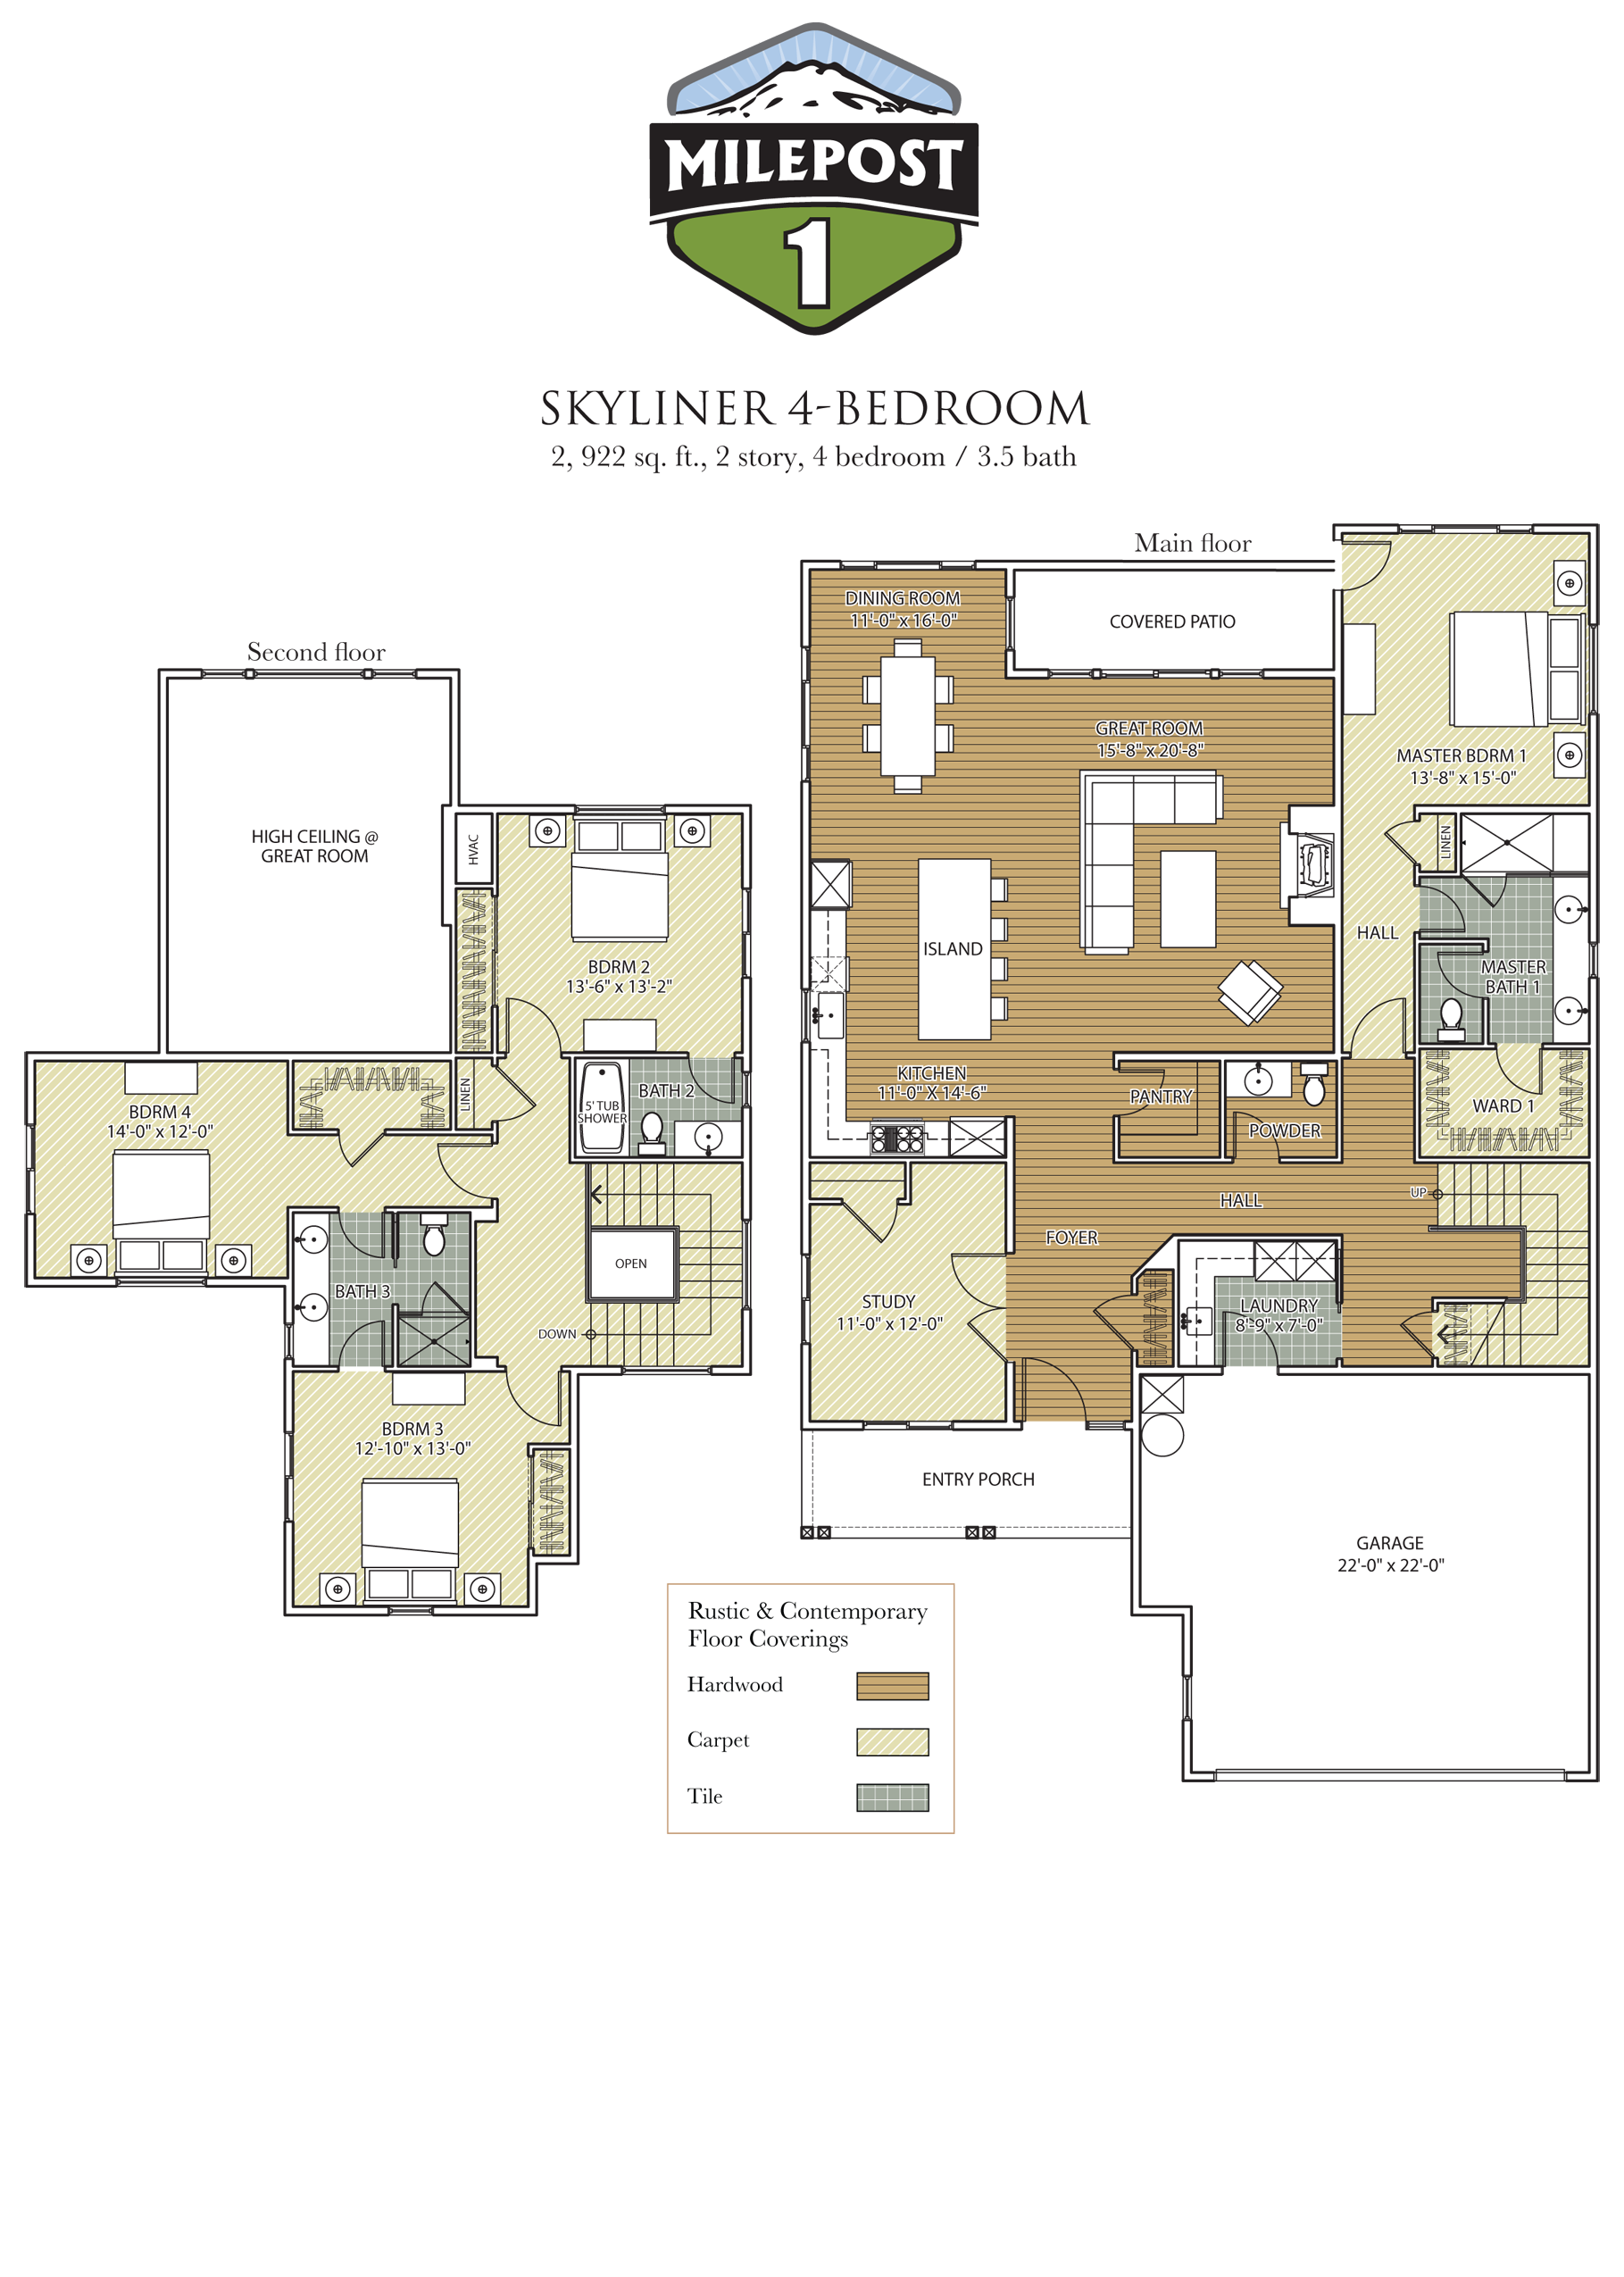 Milepost 1 Skyliner 4-Bedroom floor plan.png